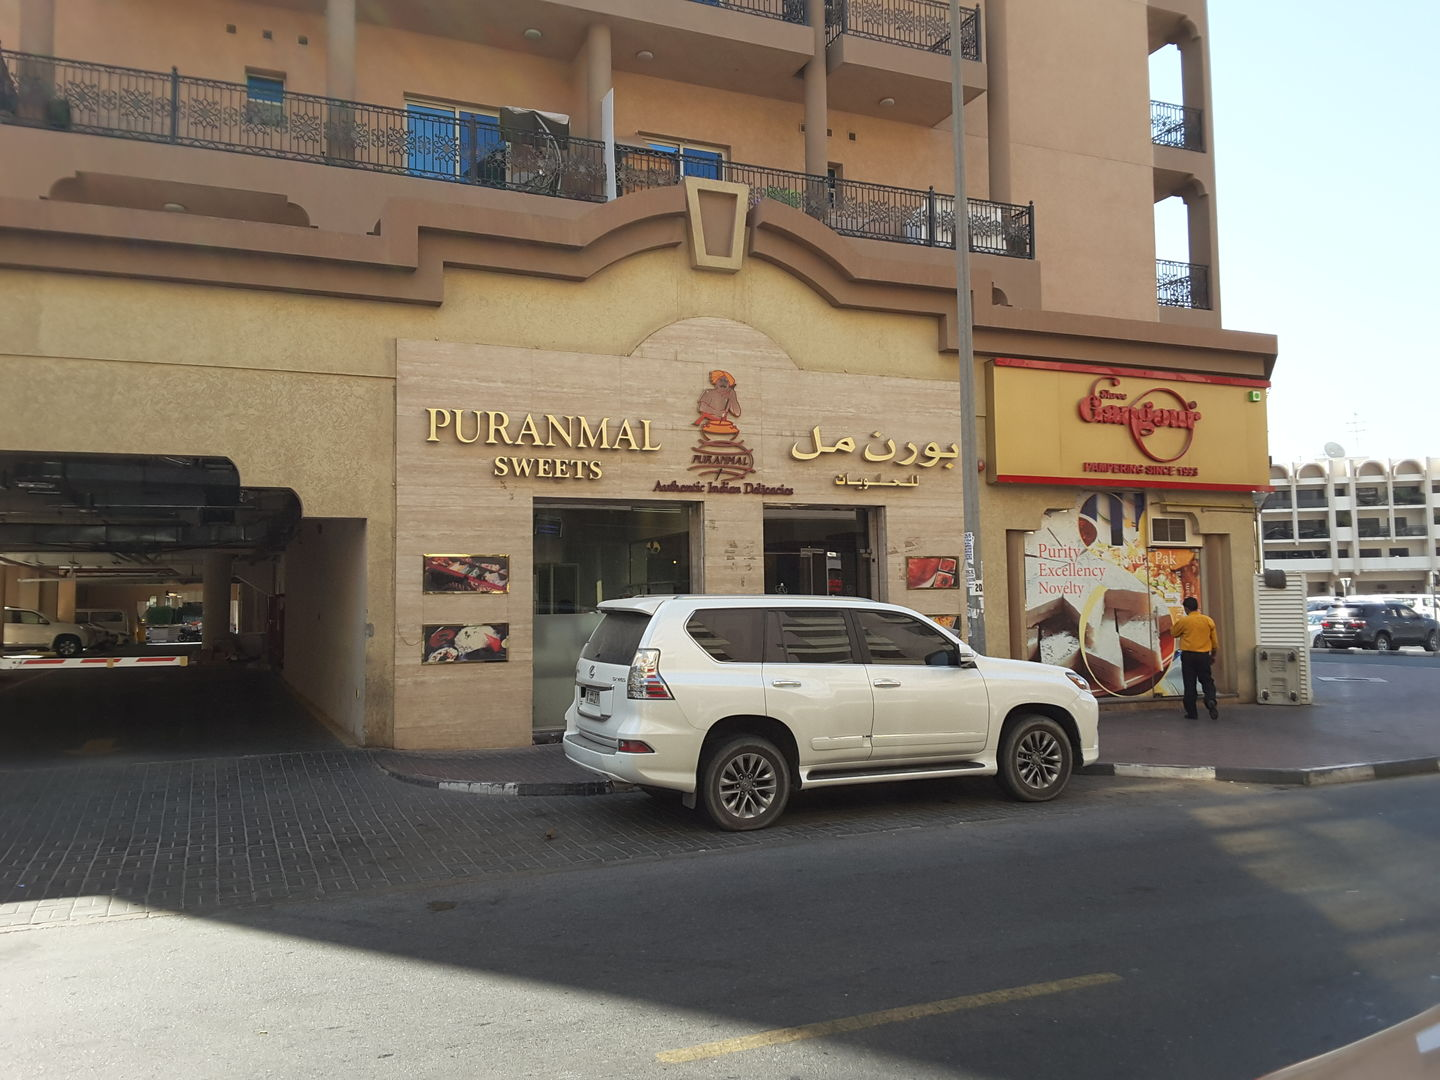 HiDubai-business-puranmal-sweets-food-beverage-bakeries-desserts-sweets-oud-metha-dubai-2